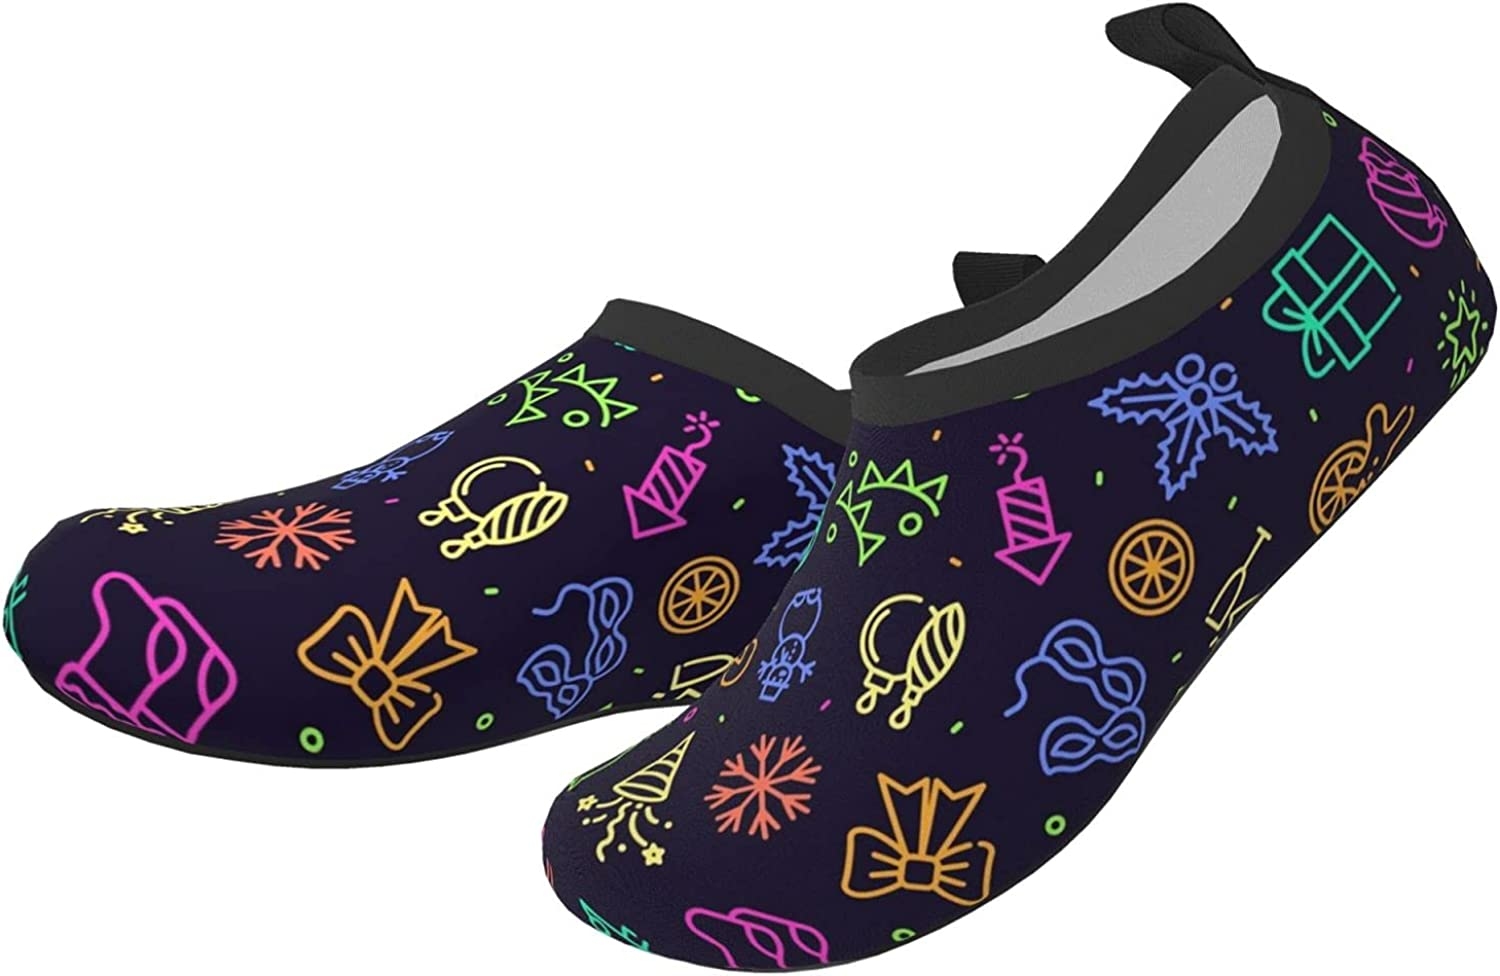 Jedenkuku Shiny Bow Gift Christmas Stocking Children's Water Shoes Feel Barefoot for Swimming Beach Boating Surfing Yoga